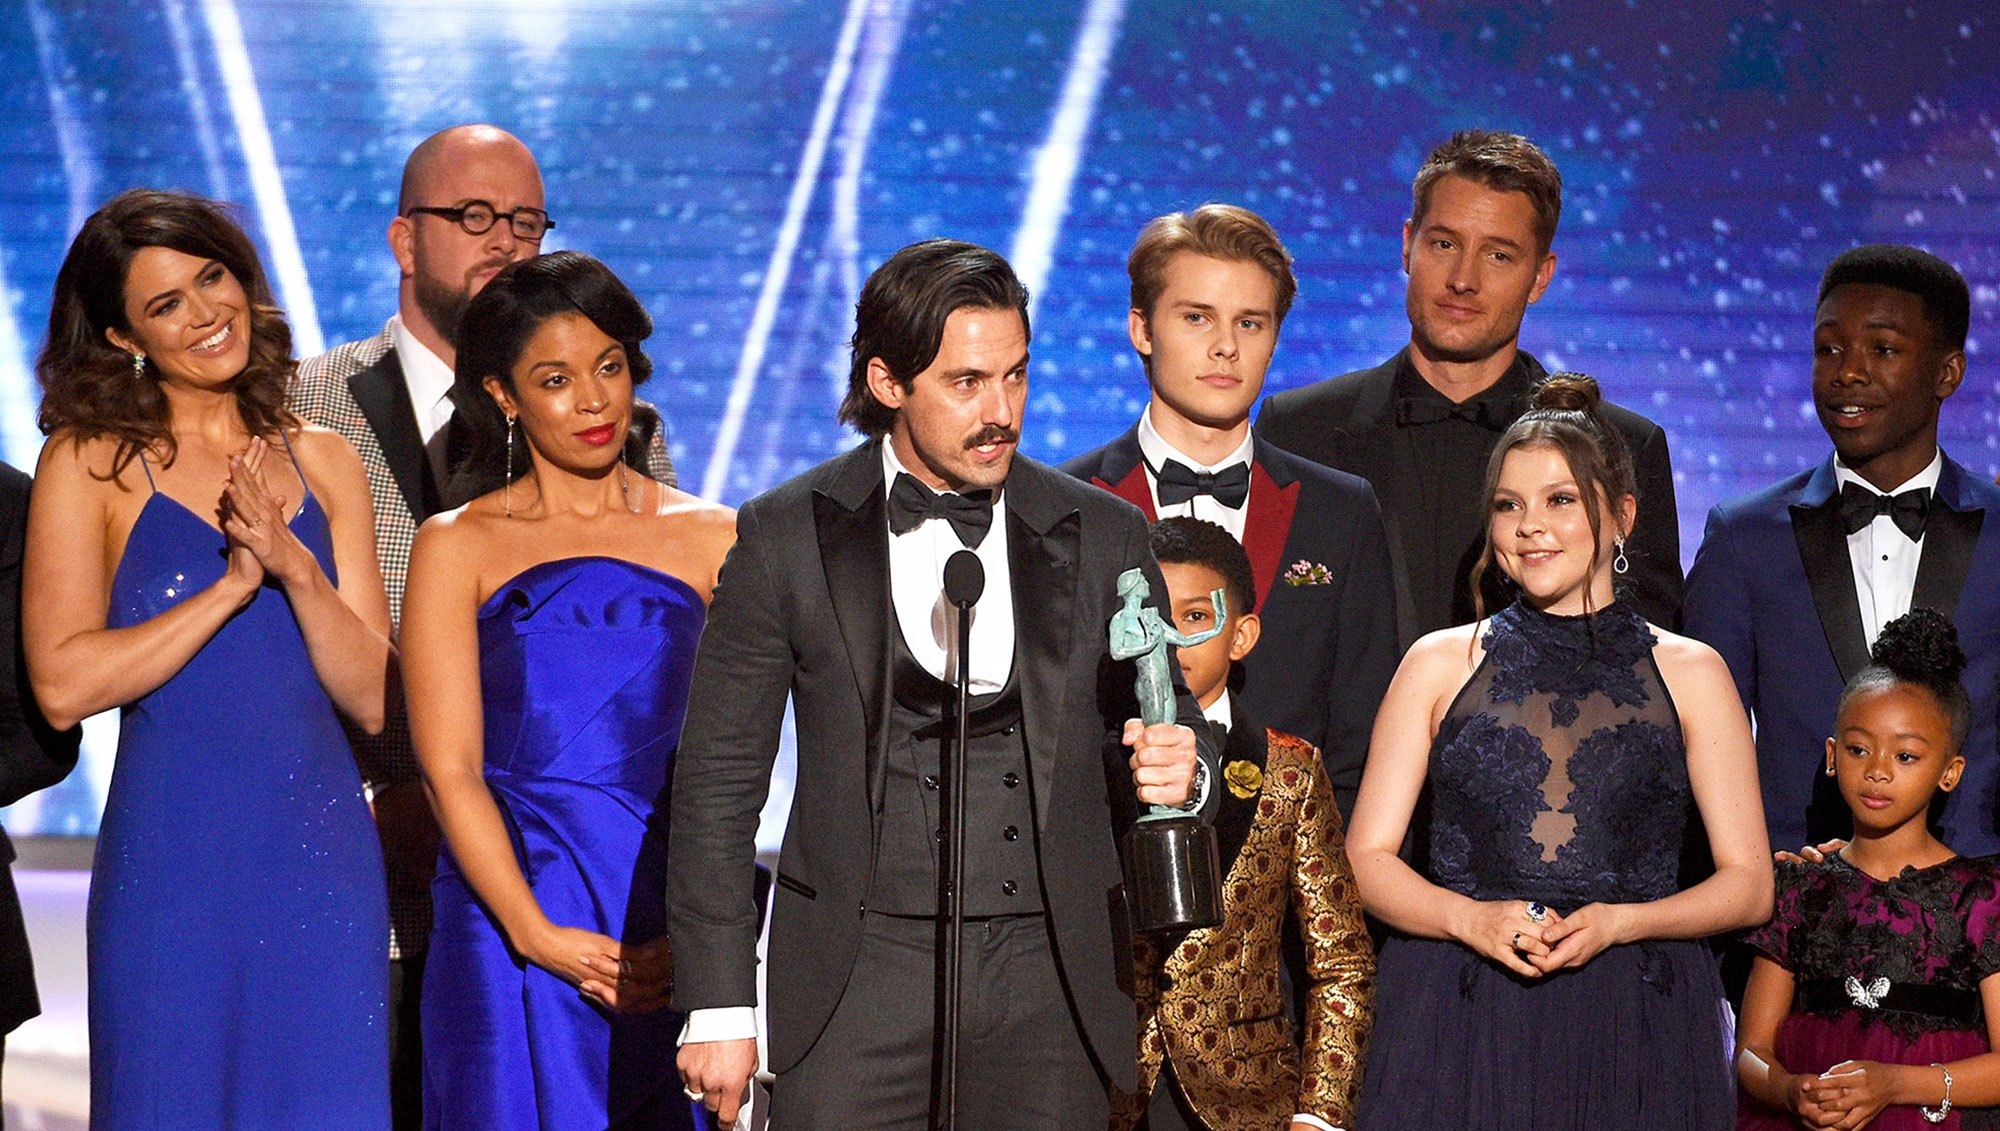 Milo Ventimiglia and 'This Is Us' cast onstage during the 24th Annual Screen Actors Guild Awards at The Shrine Auditorium on January 21, 2018 in Los Angeles, California.